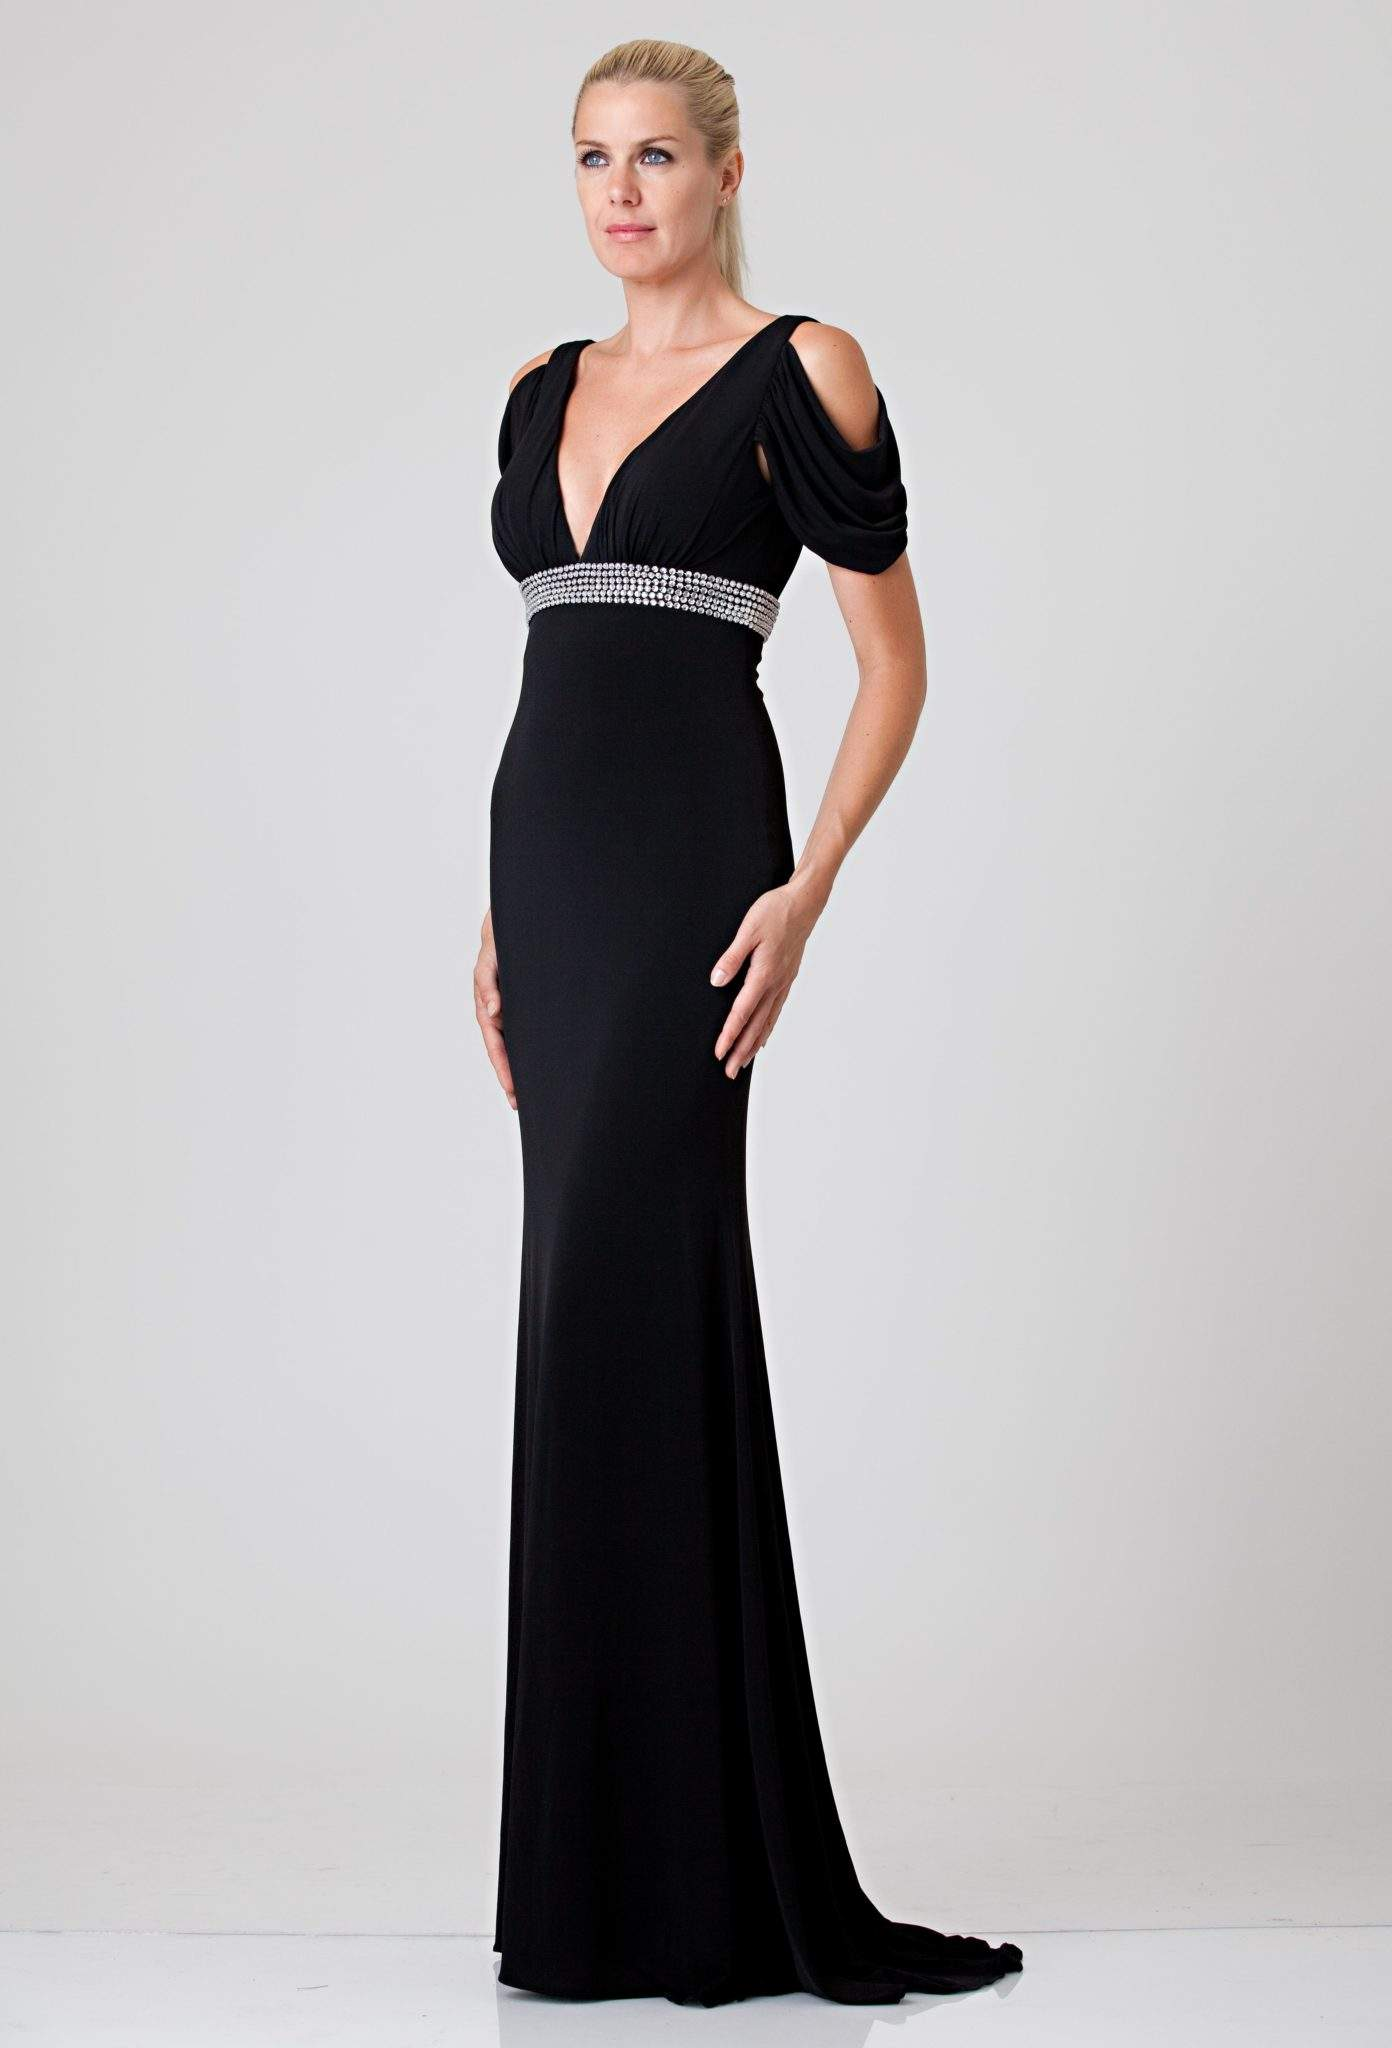 Formal dress photo womens formal dresses san antonio for Plus size wedding dresses austin tx